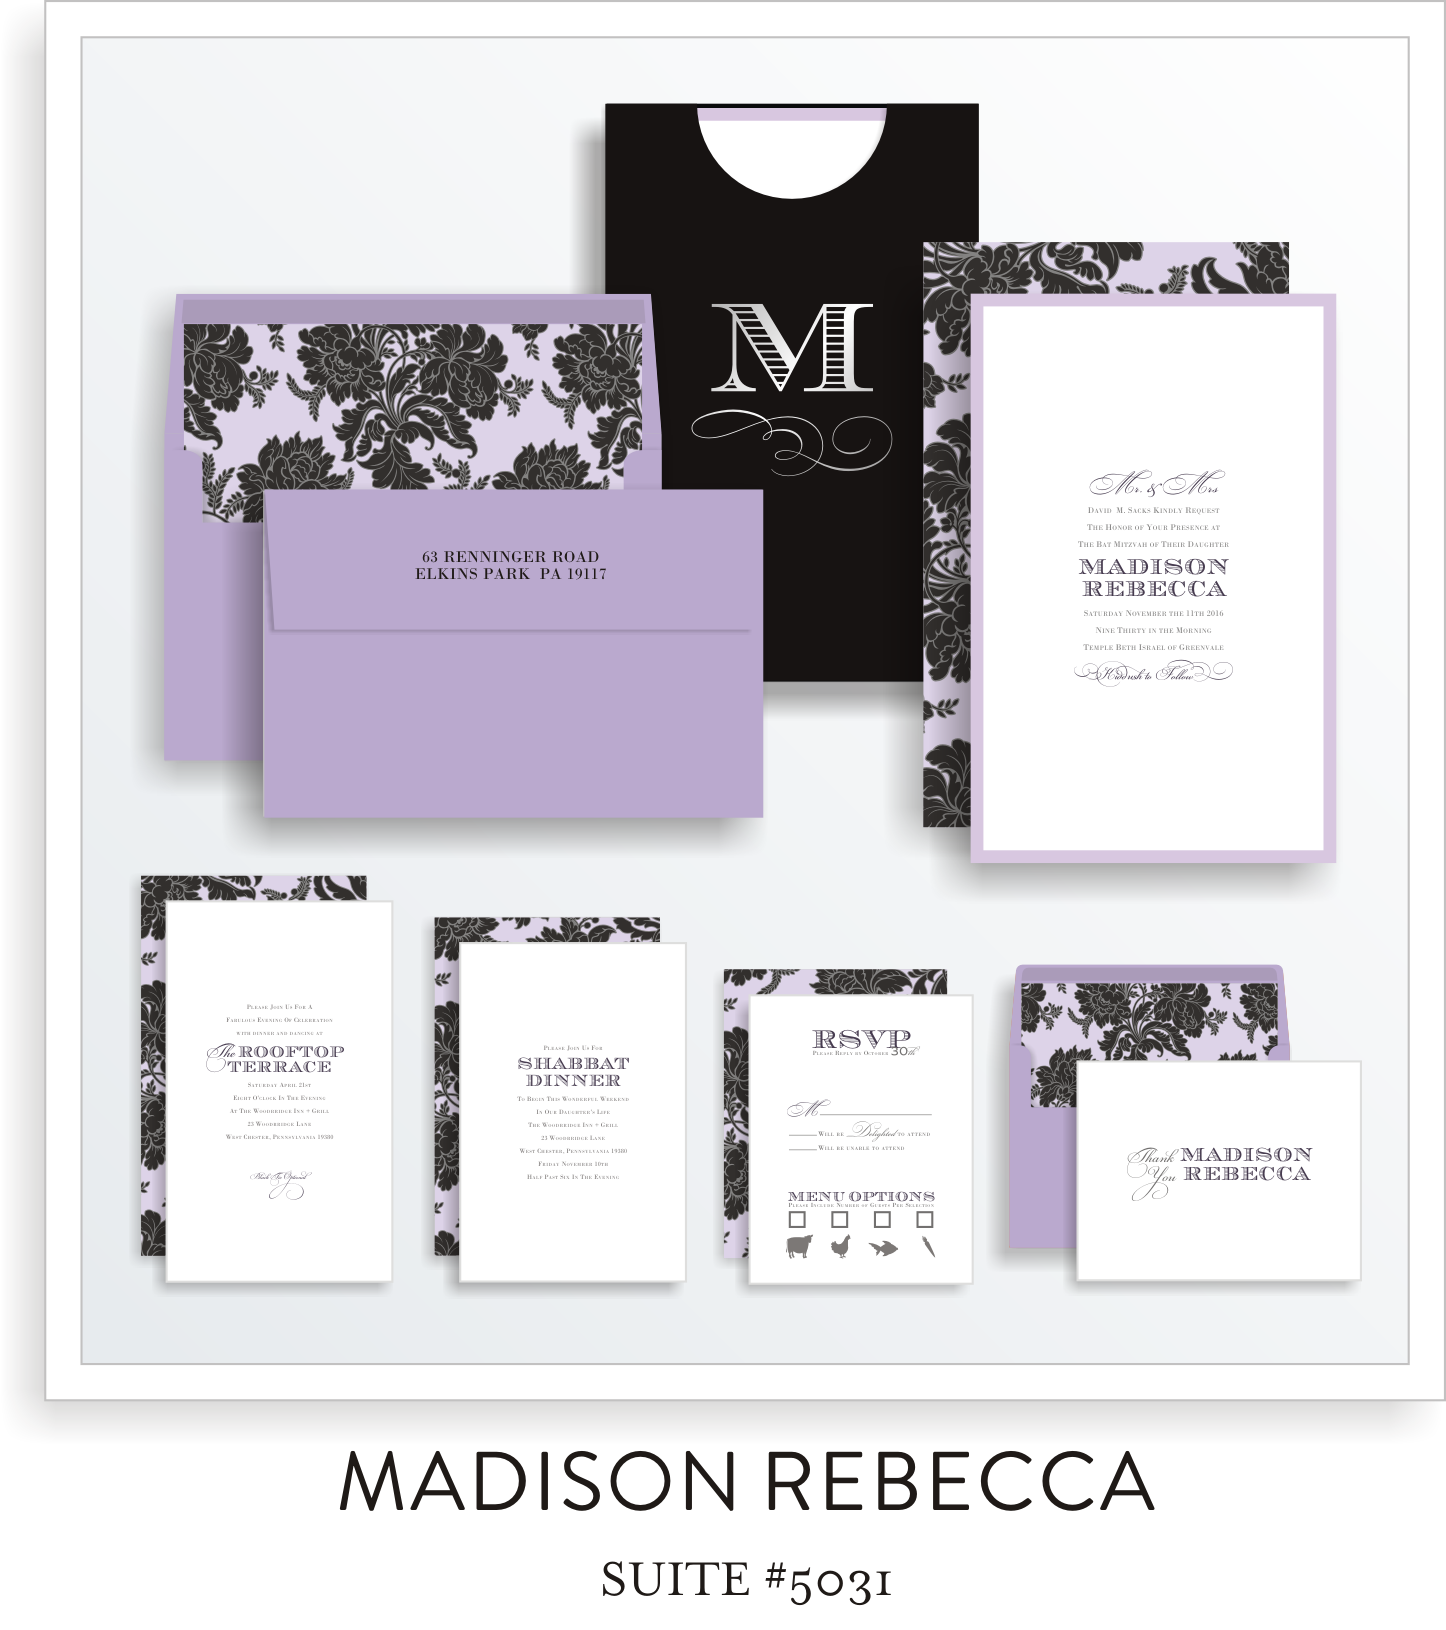 Copy of bat mitzvah invitations 5031